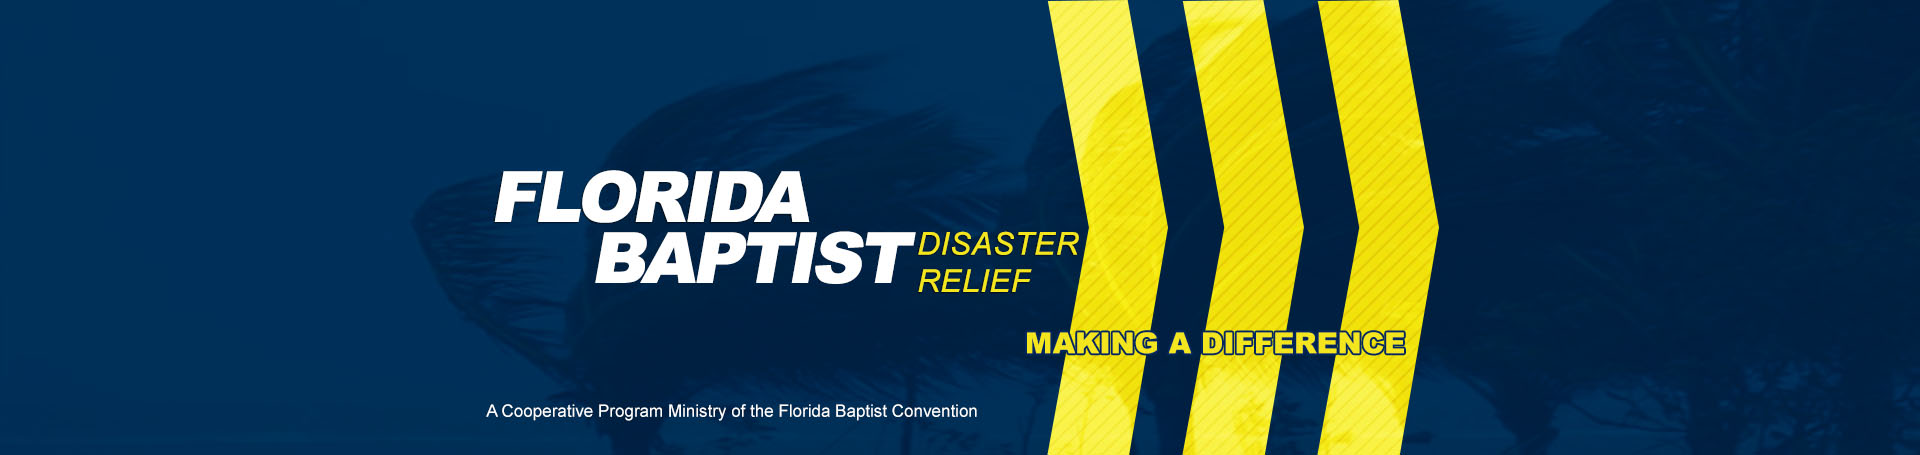 Florida Baptist Convention Disaster Relief, Florida Baptist Convention, Disaster Relief